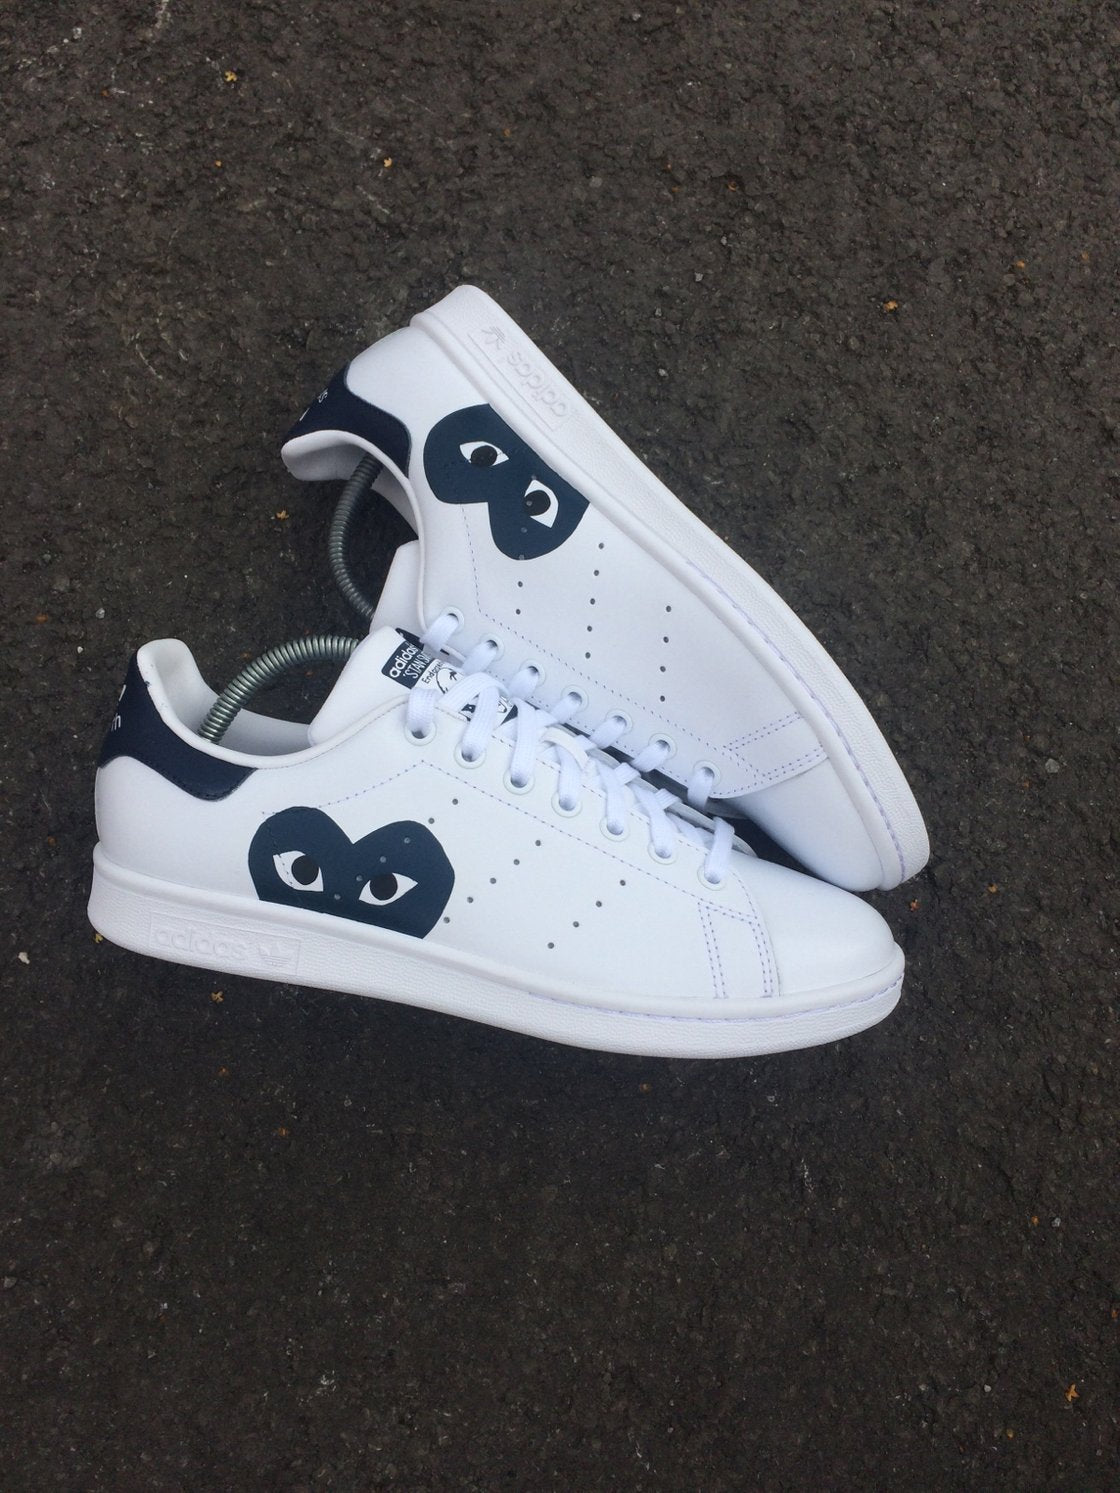 check out 293ca f0702 ADIDAS STAN SMITH WHITE - CDG